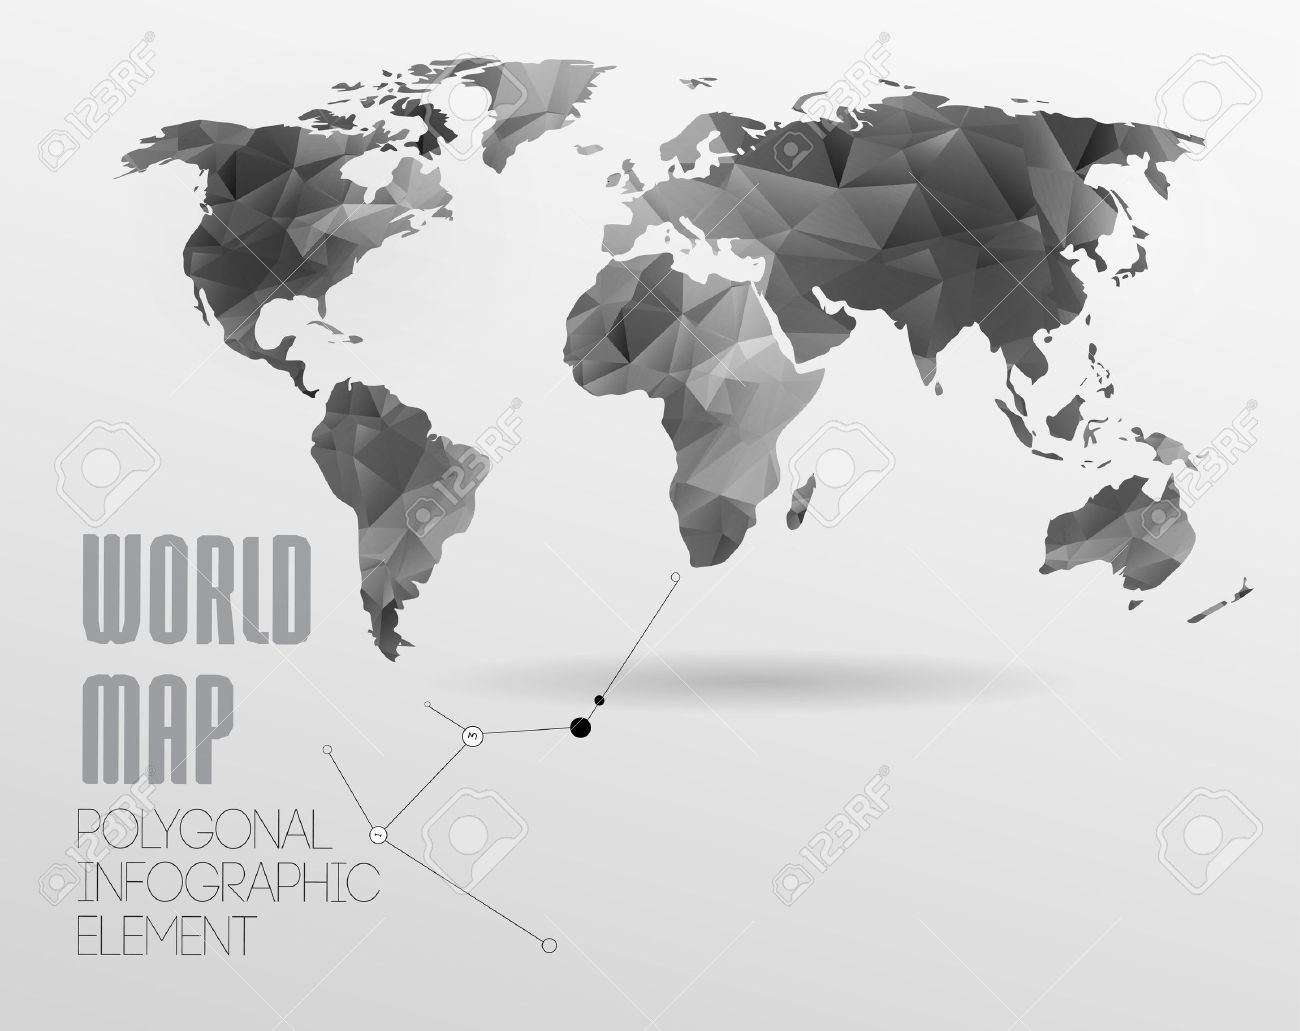 Polygonal world map and information graphics world map and polygonal world map and information graphics world map and typography stock vector 25401898 gumiabroncs Image collections